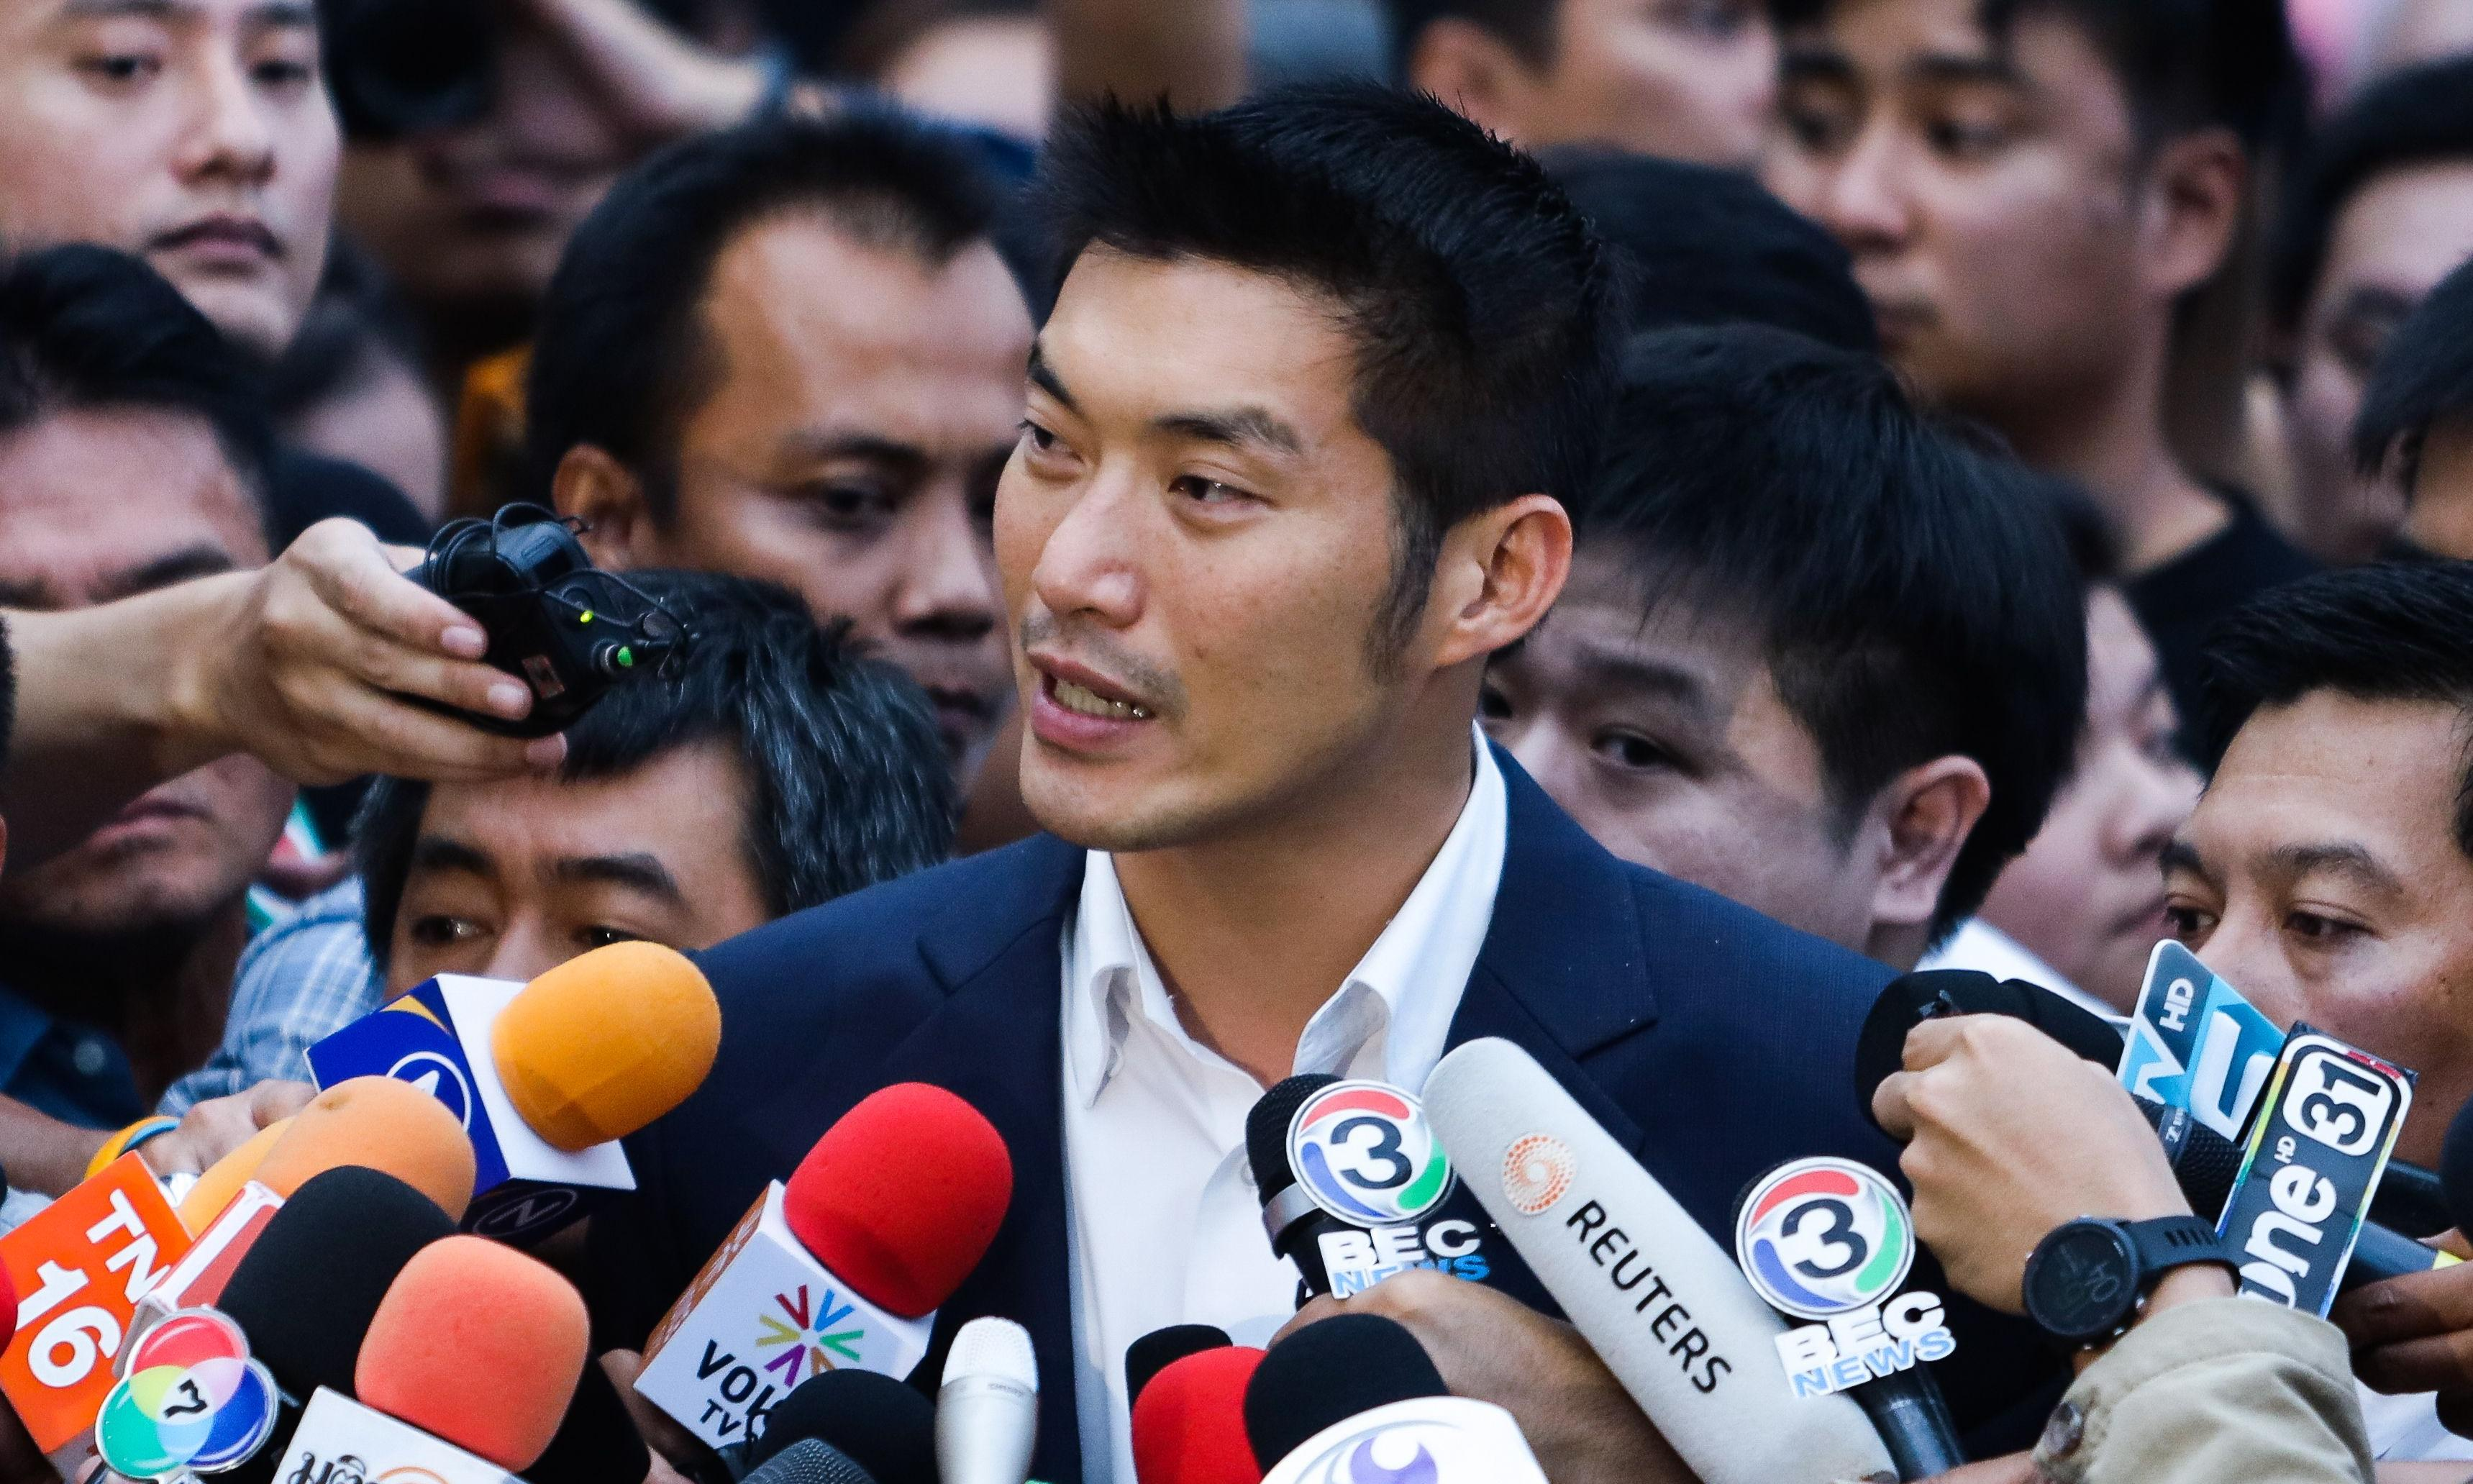 Thai opposition leader disqualified as MP over election law breach